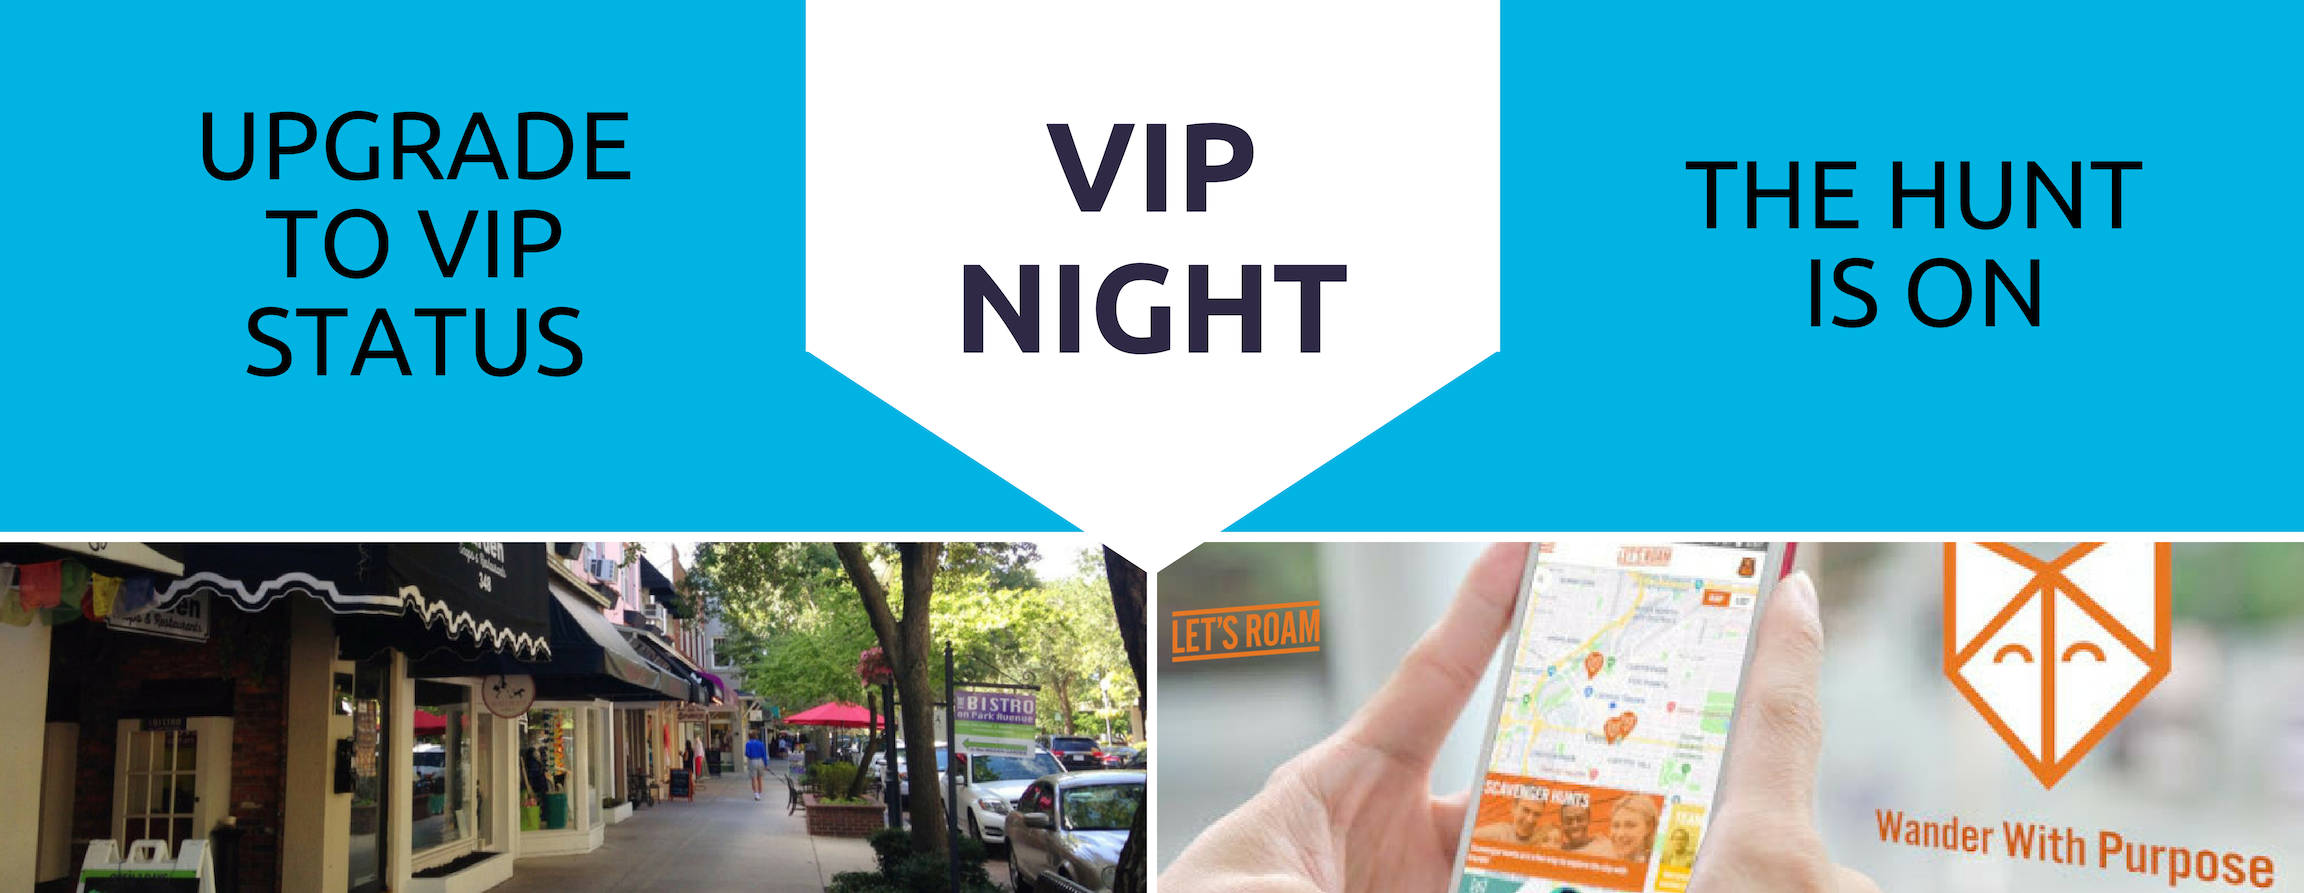 Click Image to register for VIP Night